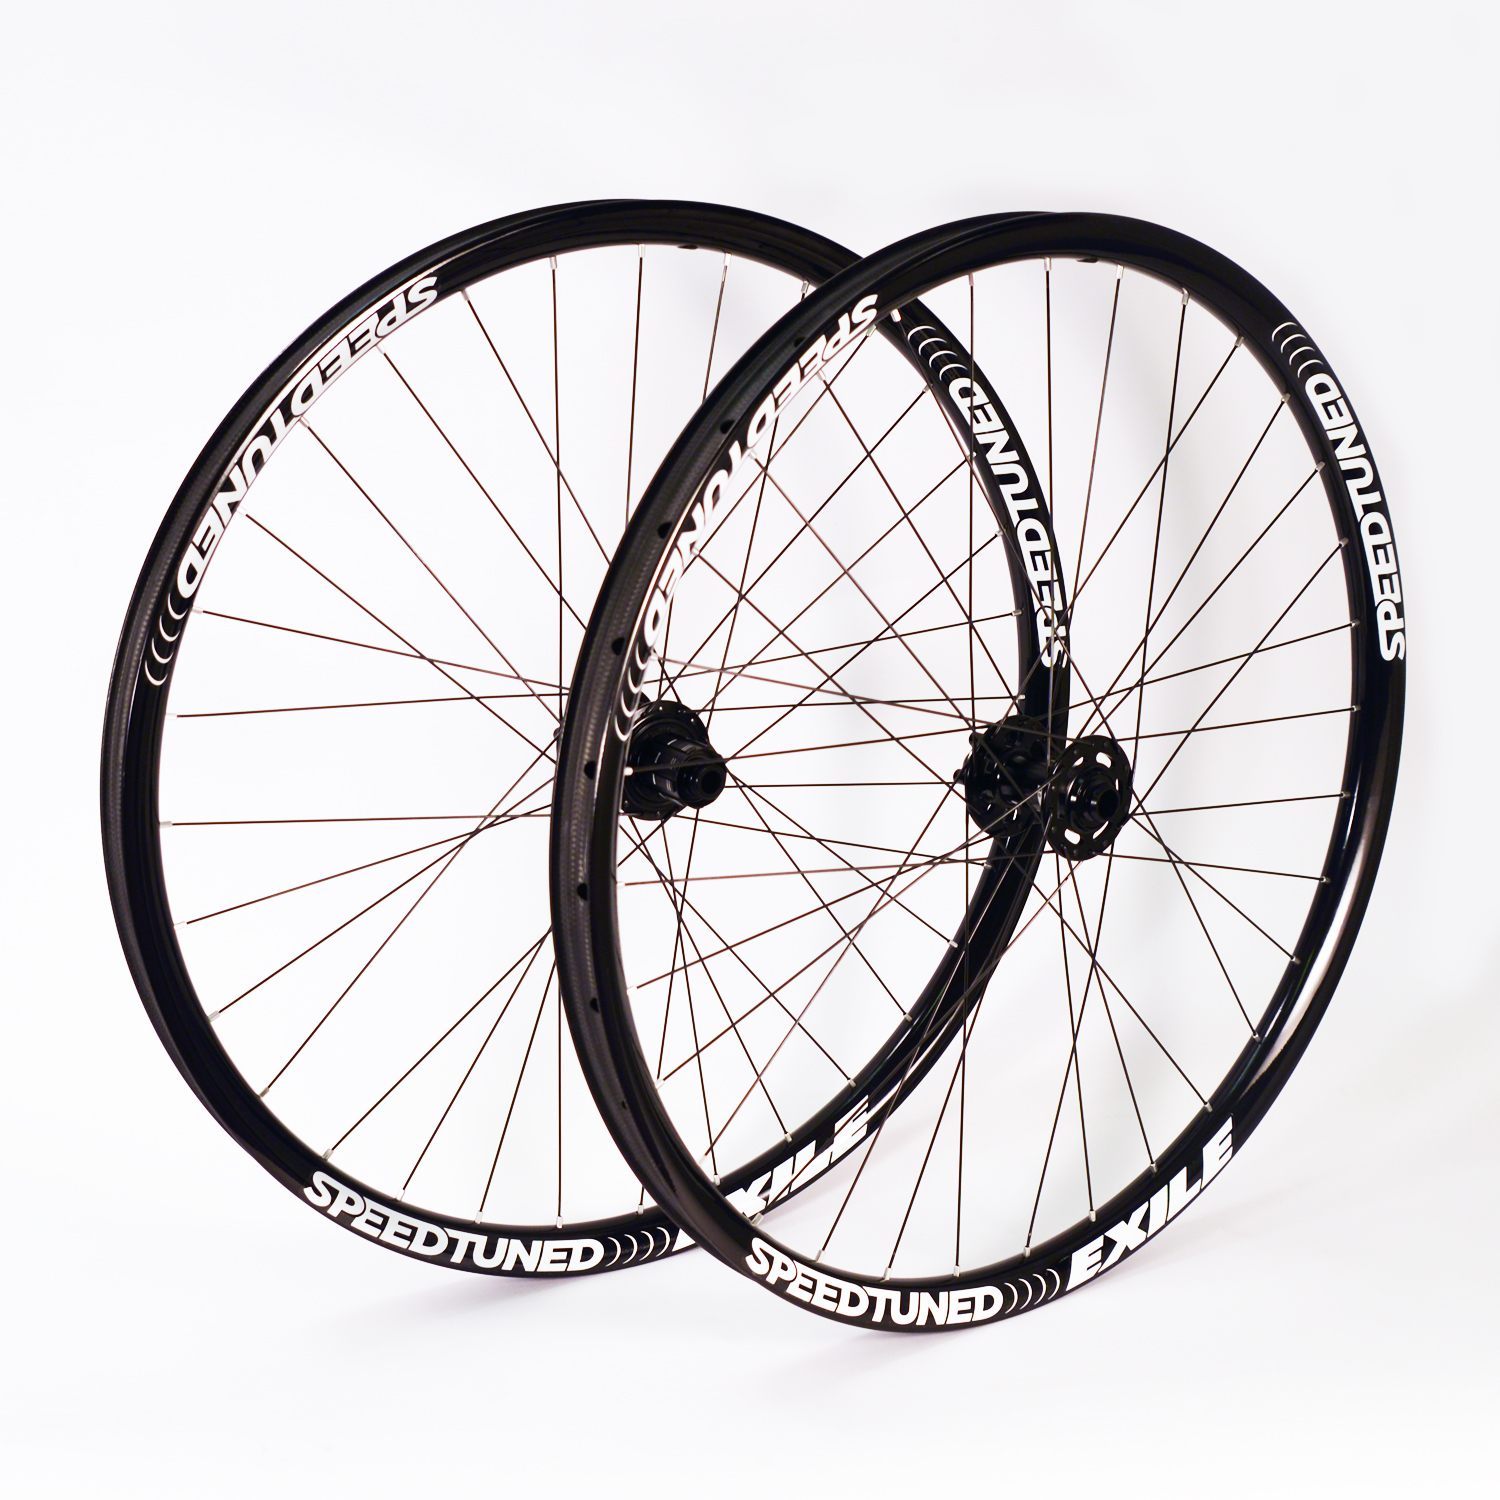 Speed Tuned Exile Carbon Bicycle Wheel Set